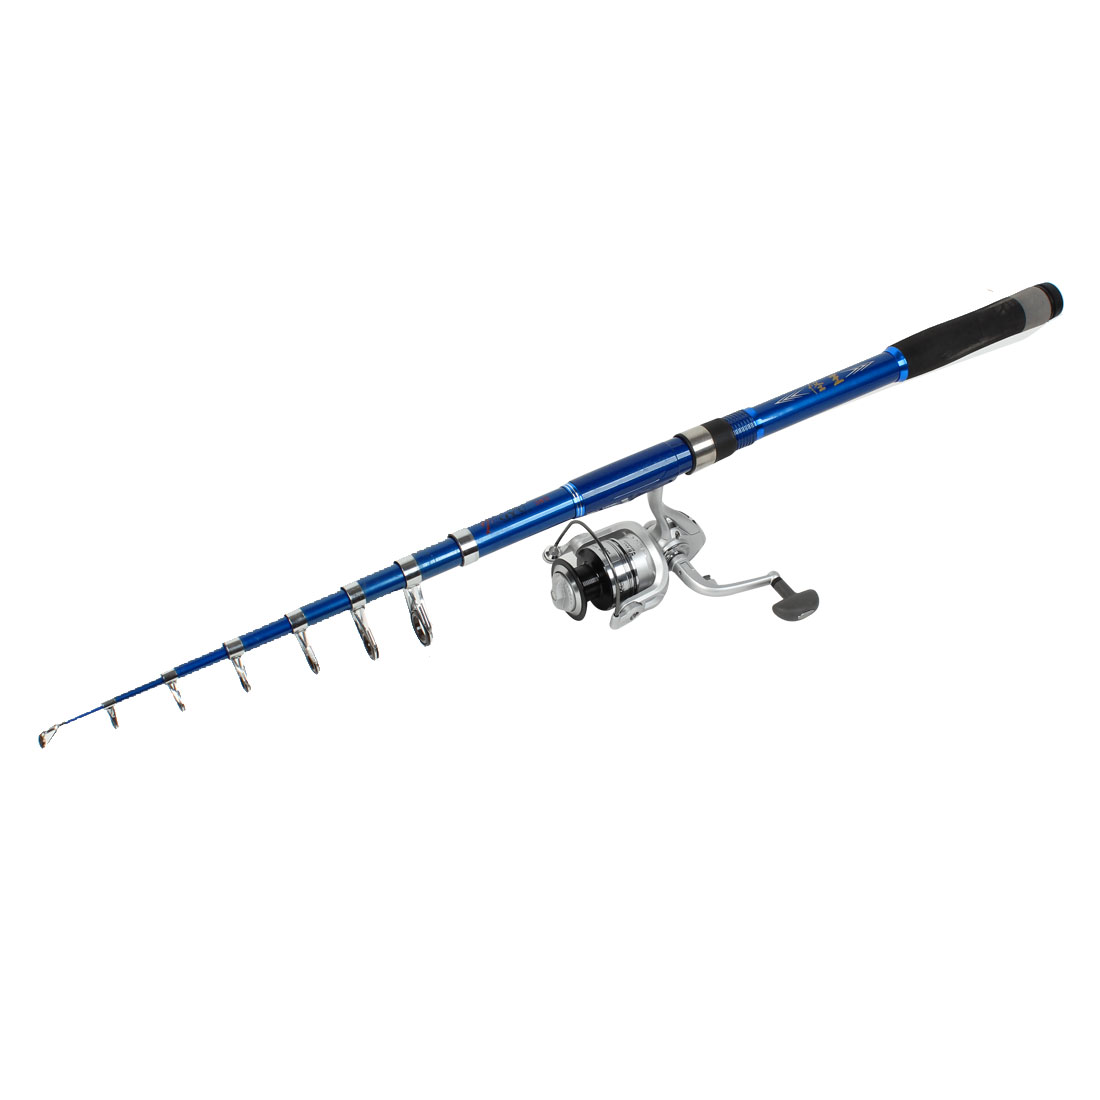 12Ft 8 Sections Carbon Fiber Spinning Fishing Pole Casting Rod Blue